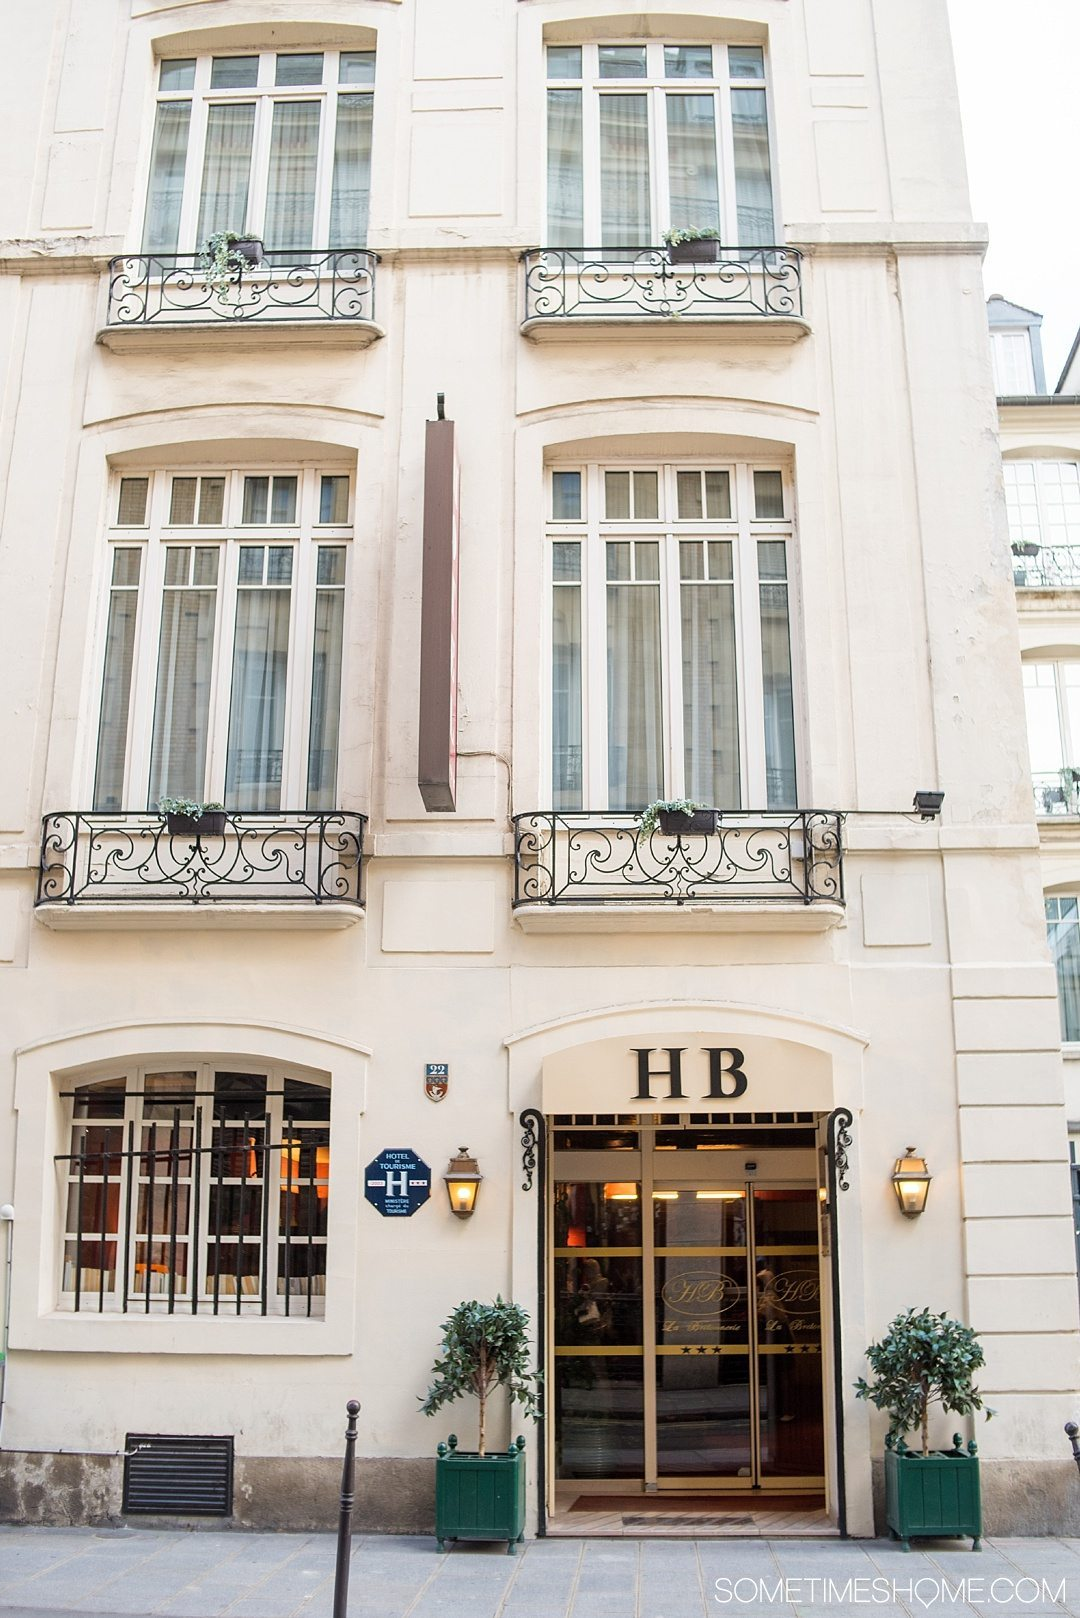 Le marais paris accommodation boutique hotel in france for Hotel marais paris